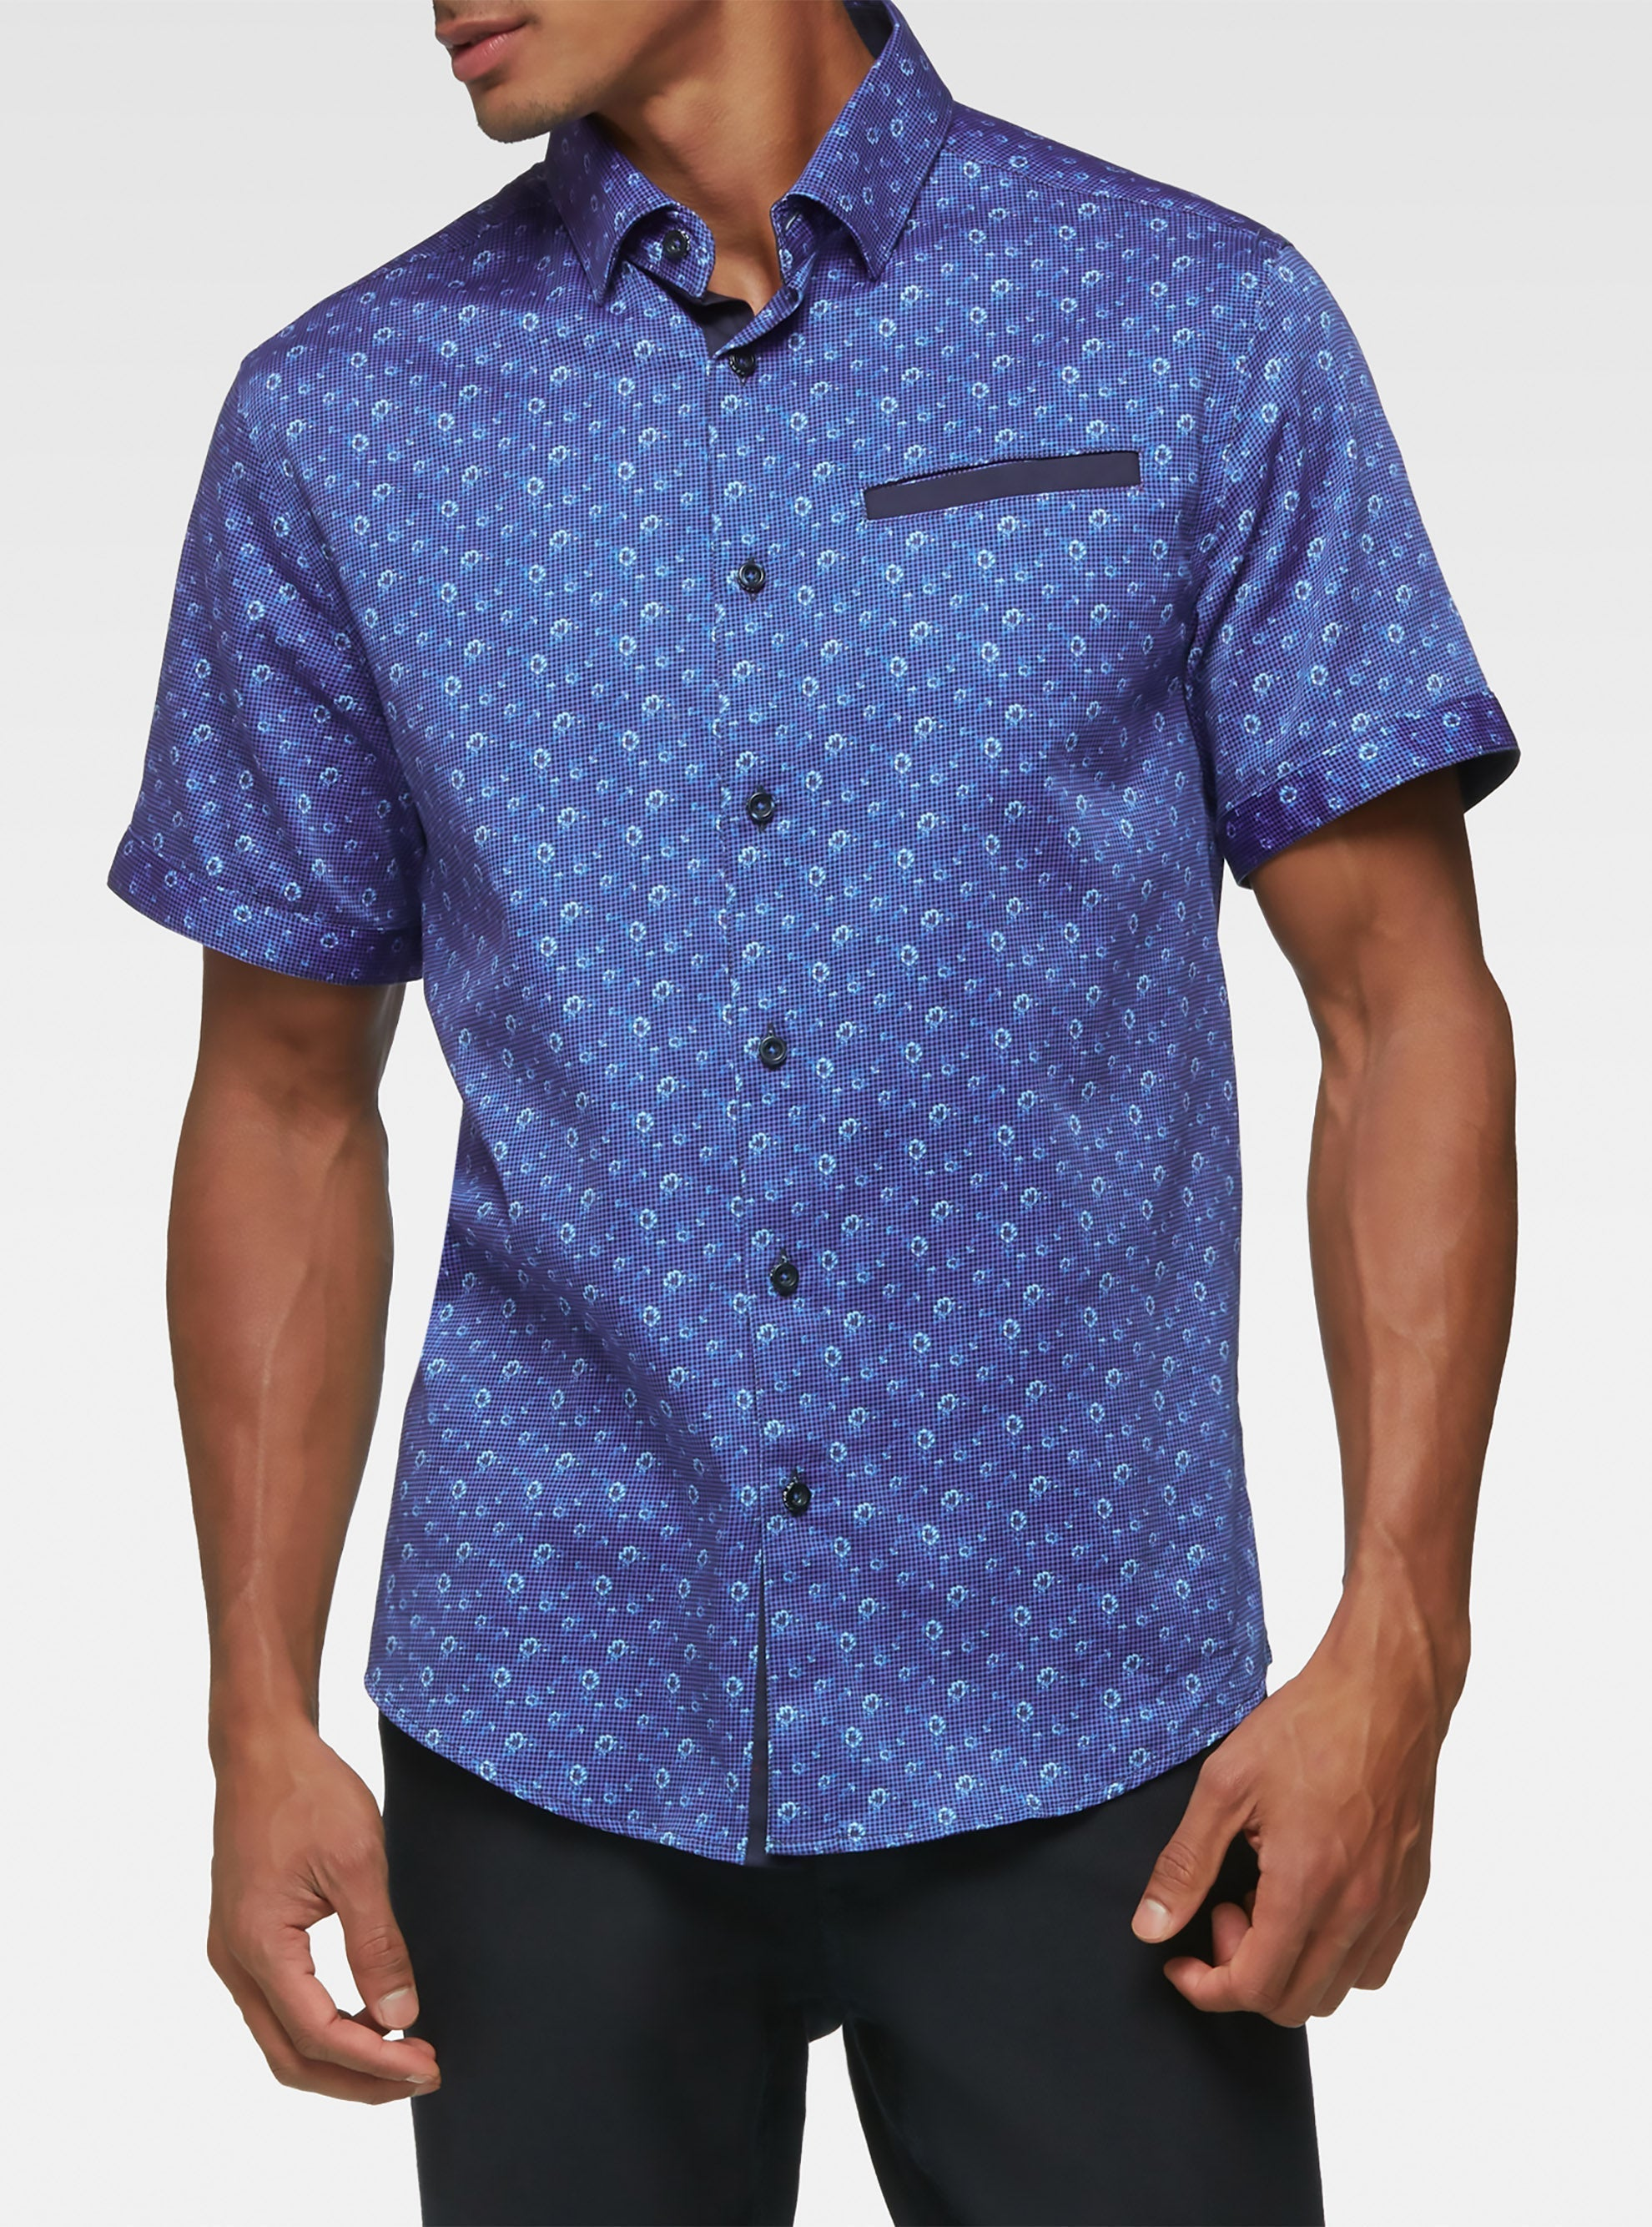 Short sleeve gingham floral printed shirts